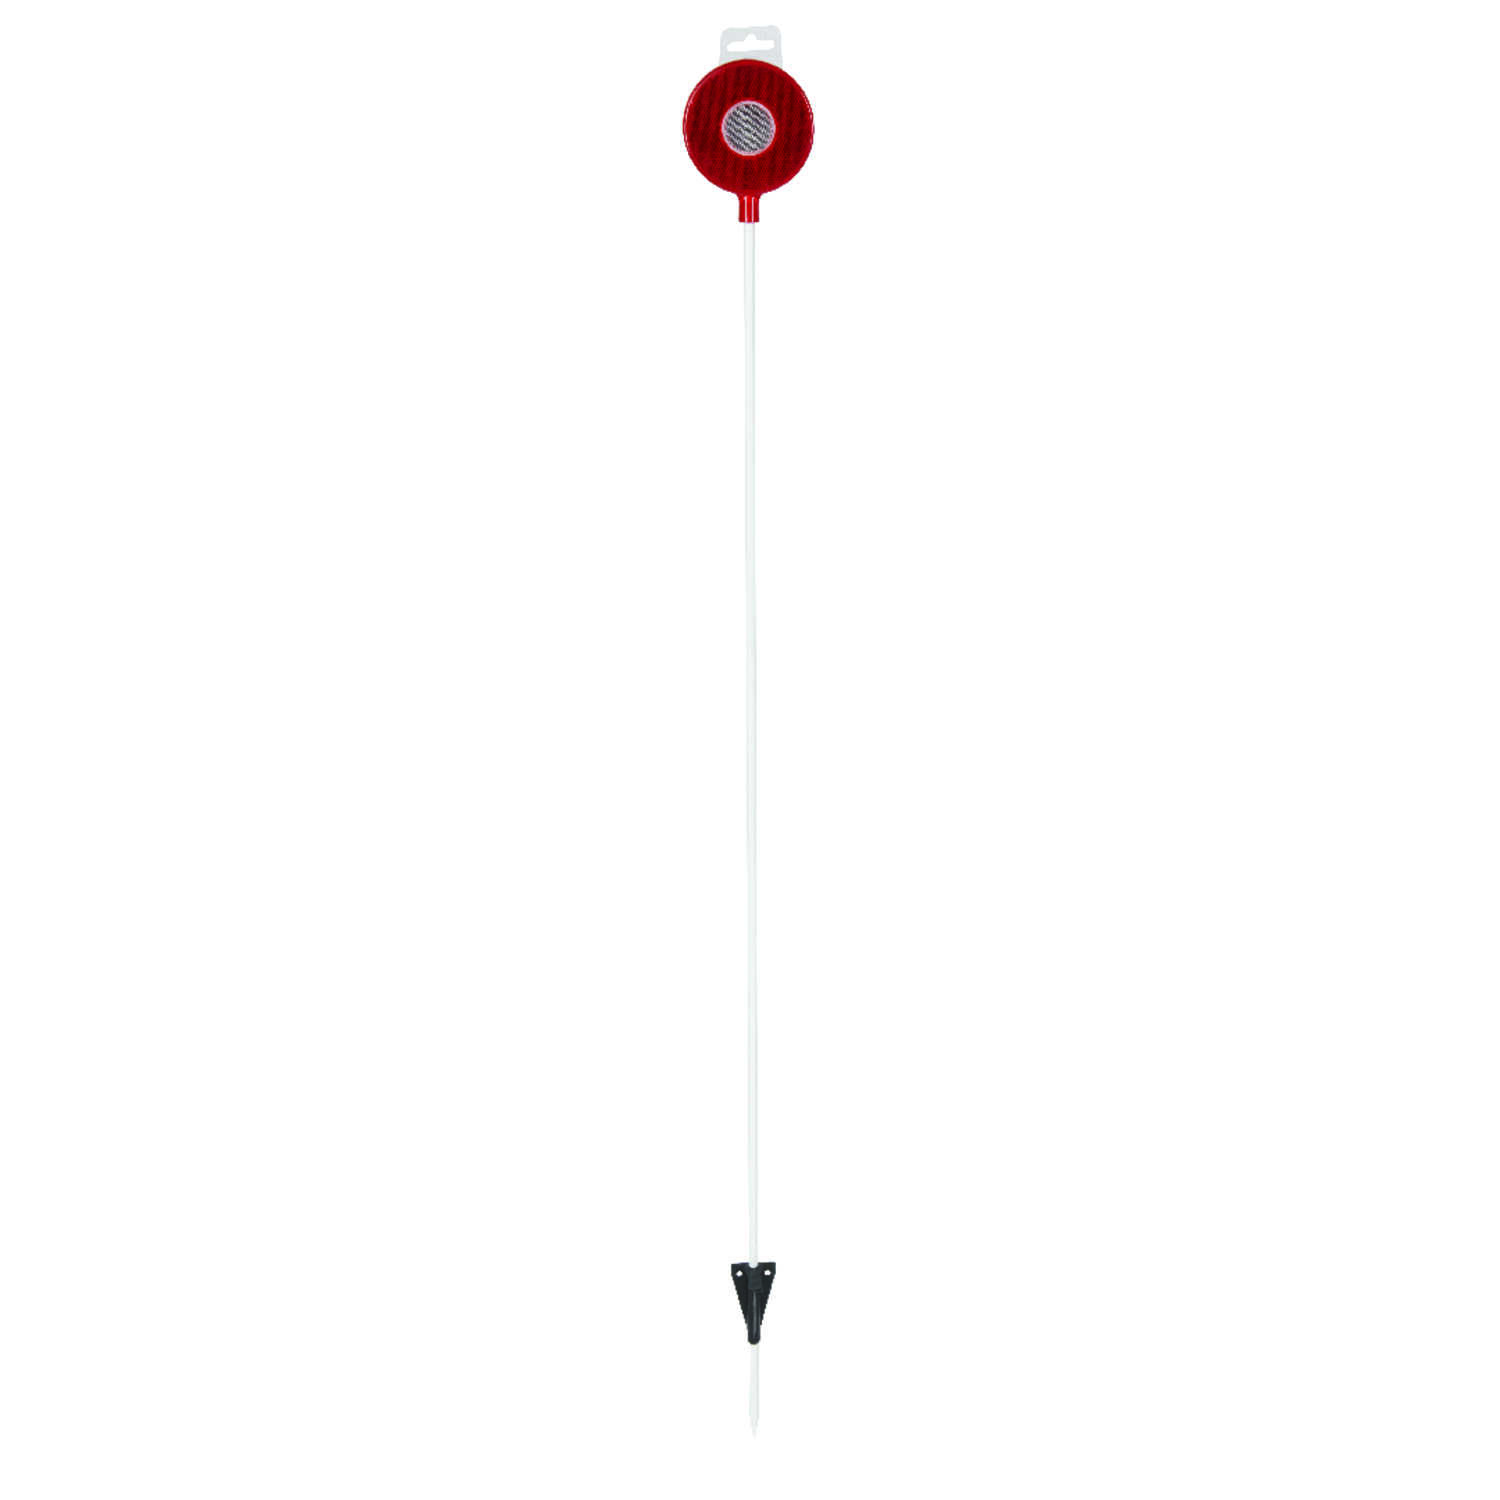 Nuvue  46 in. Round  Red/White  30  Driveway Marker